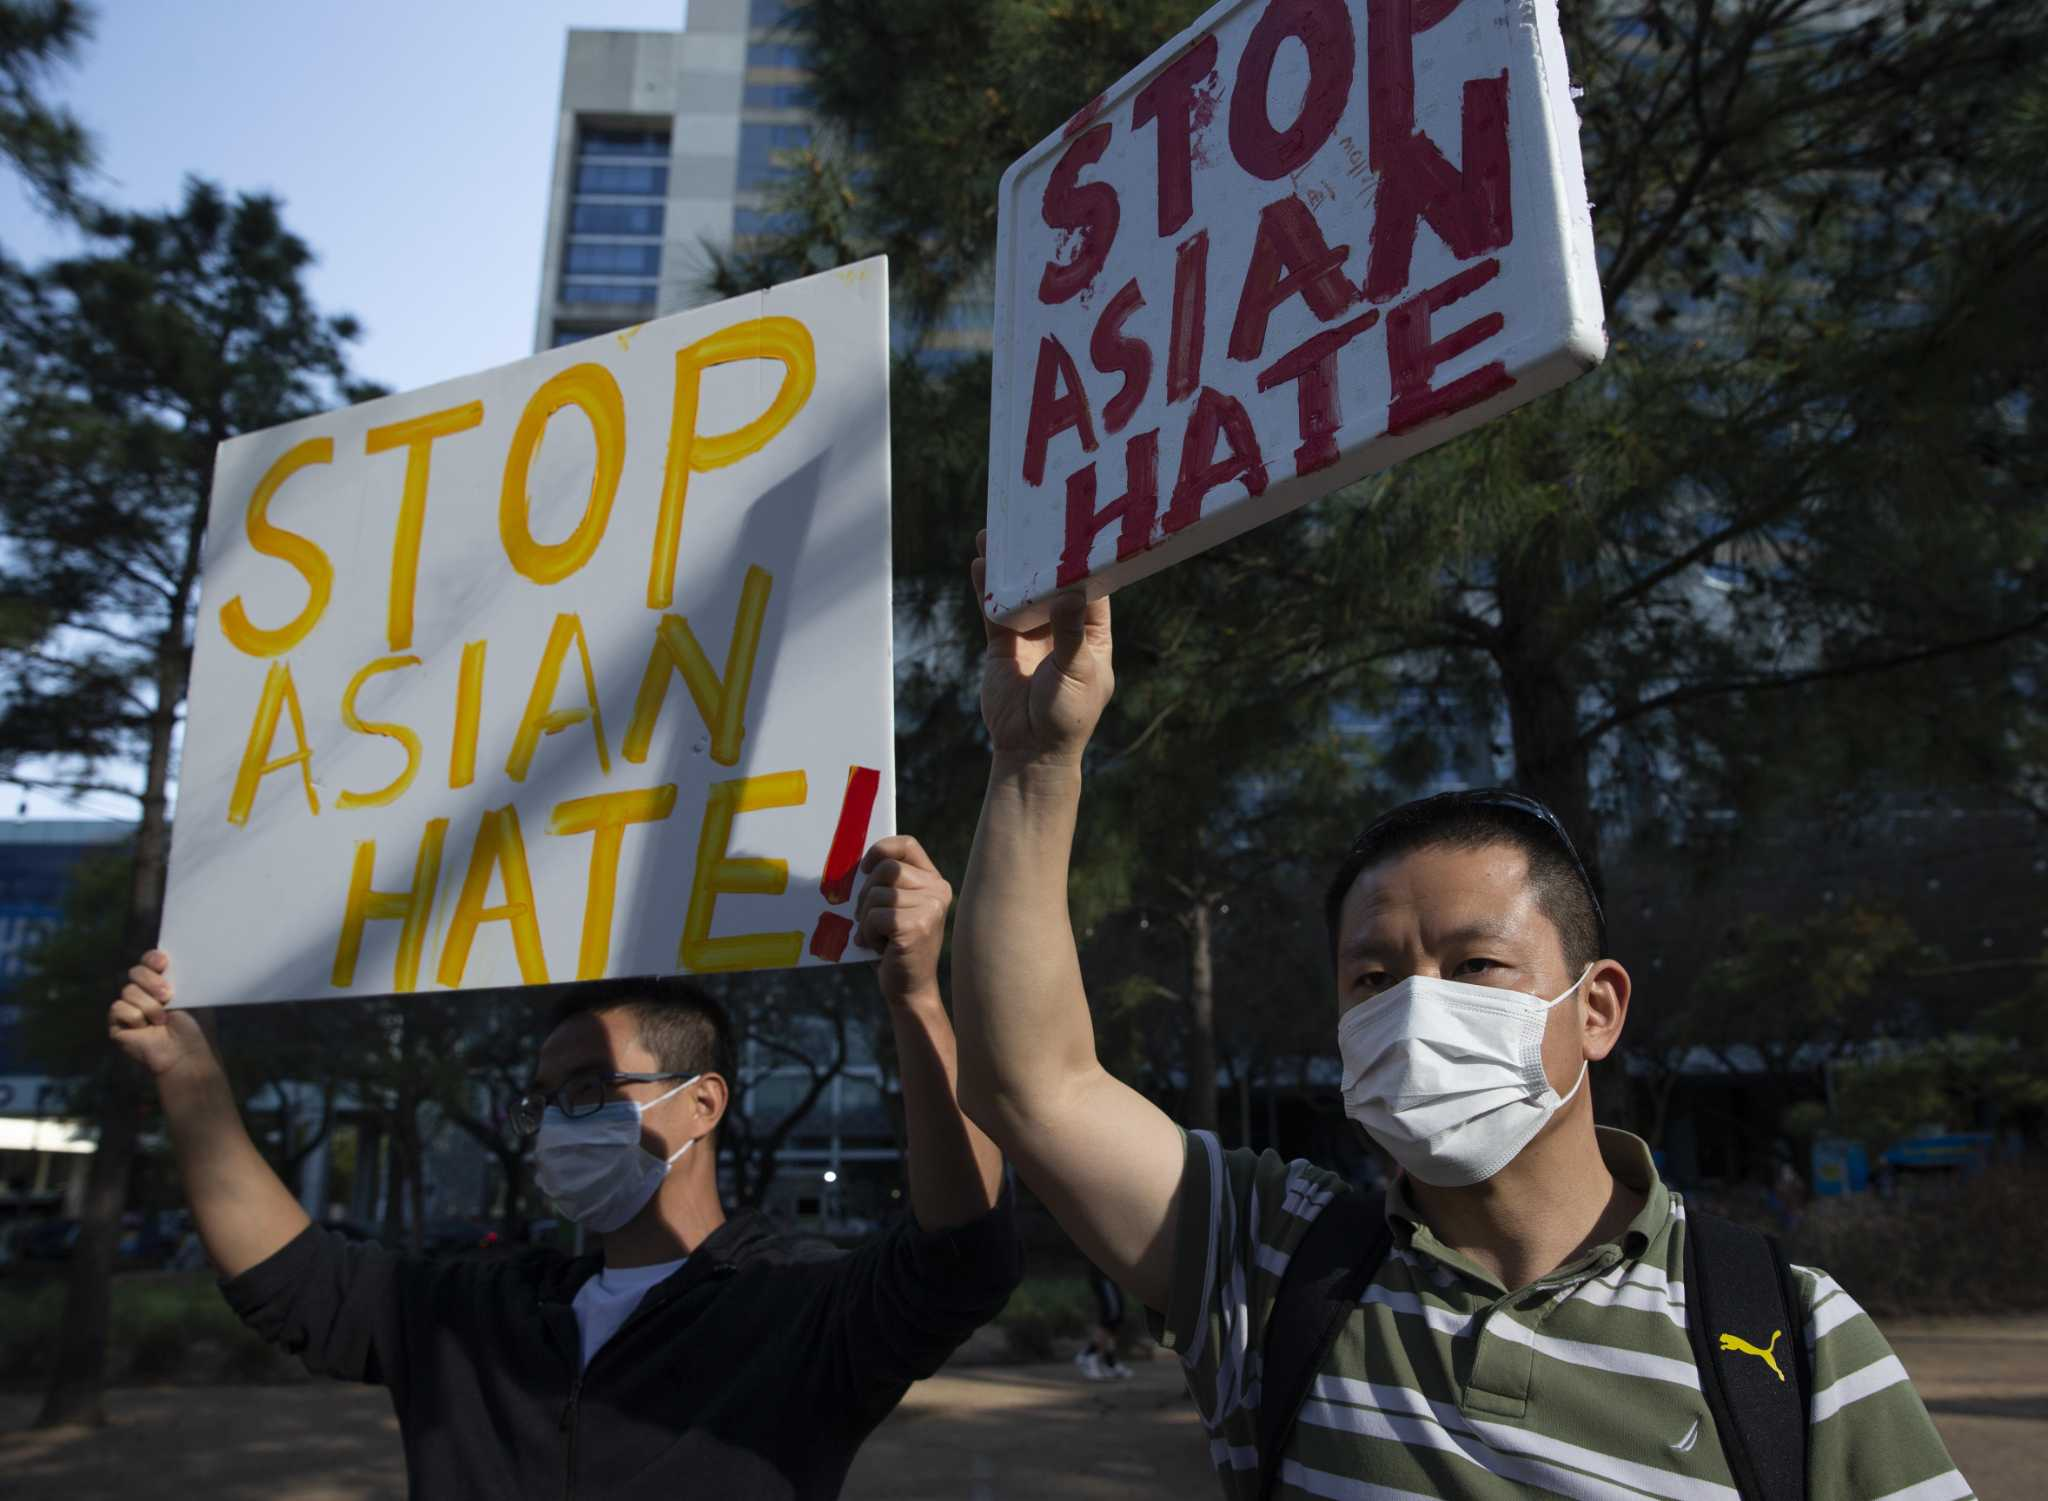 www.houstonchronicle.com: Most Asian Americans report increasing violence, a third fear attacks, Pew survey finds